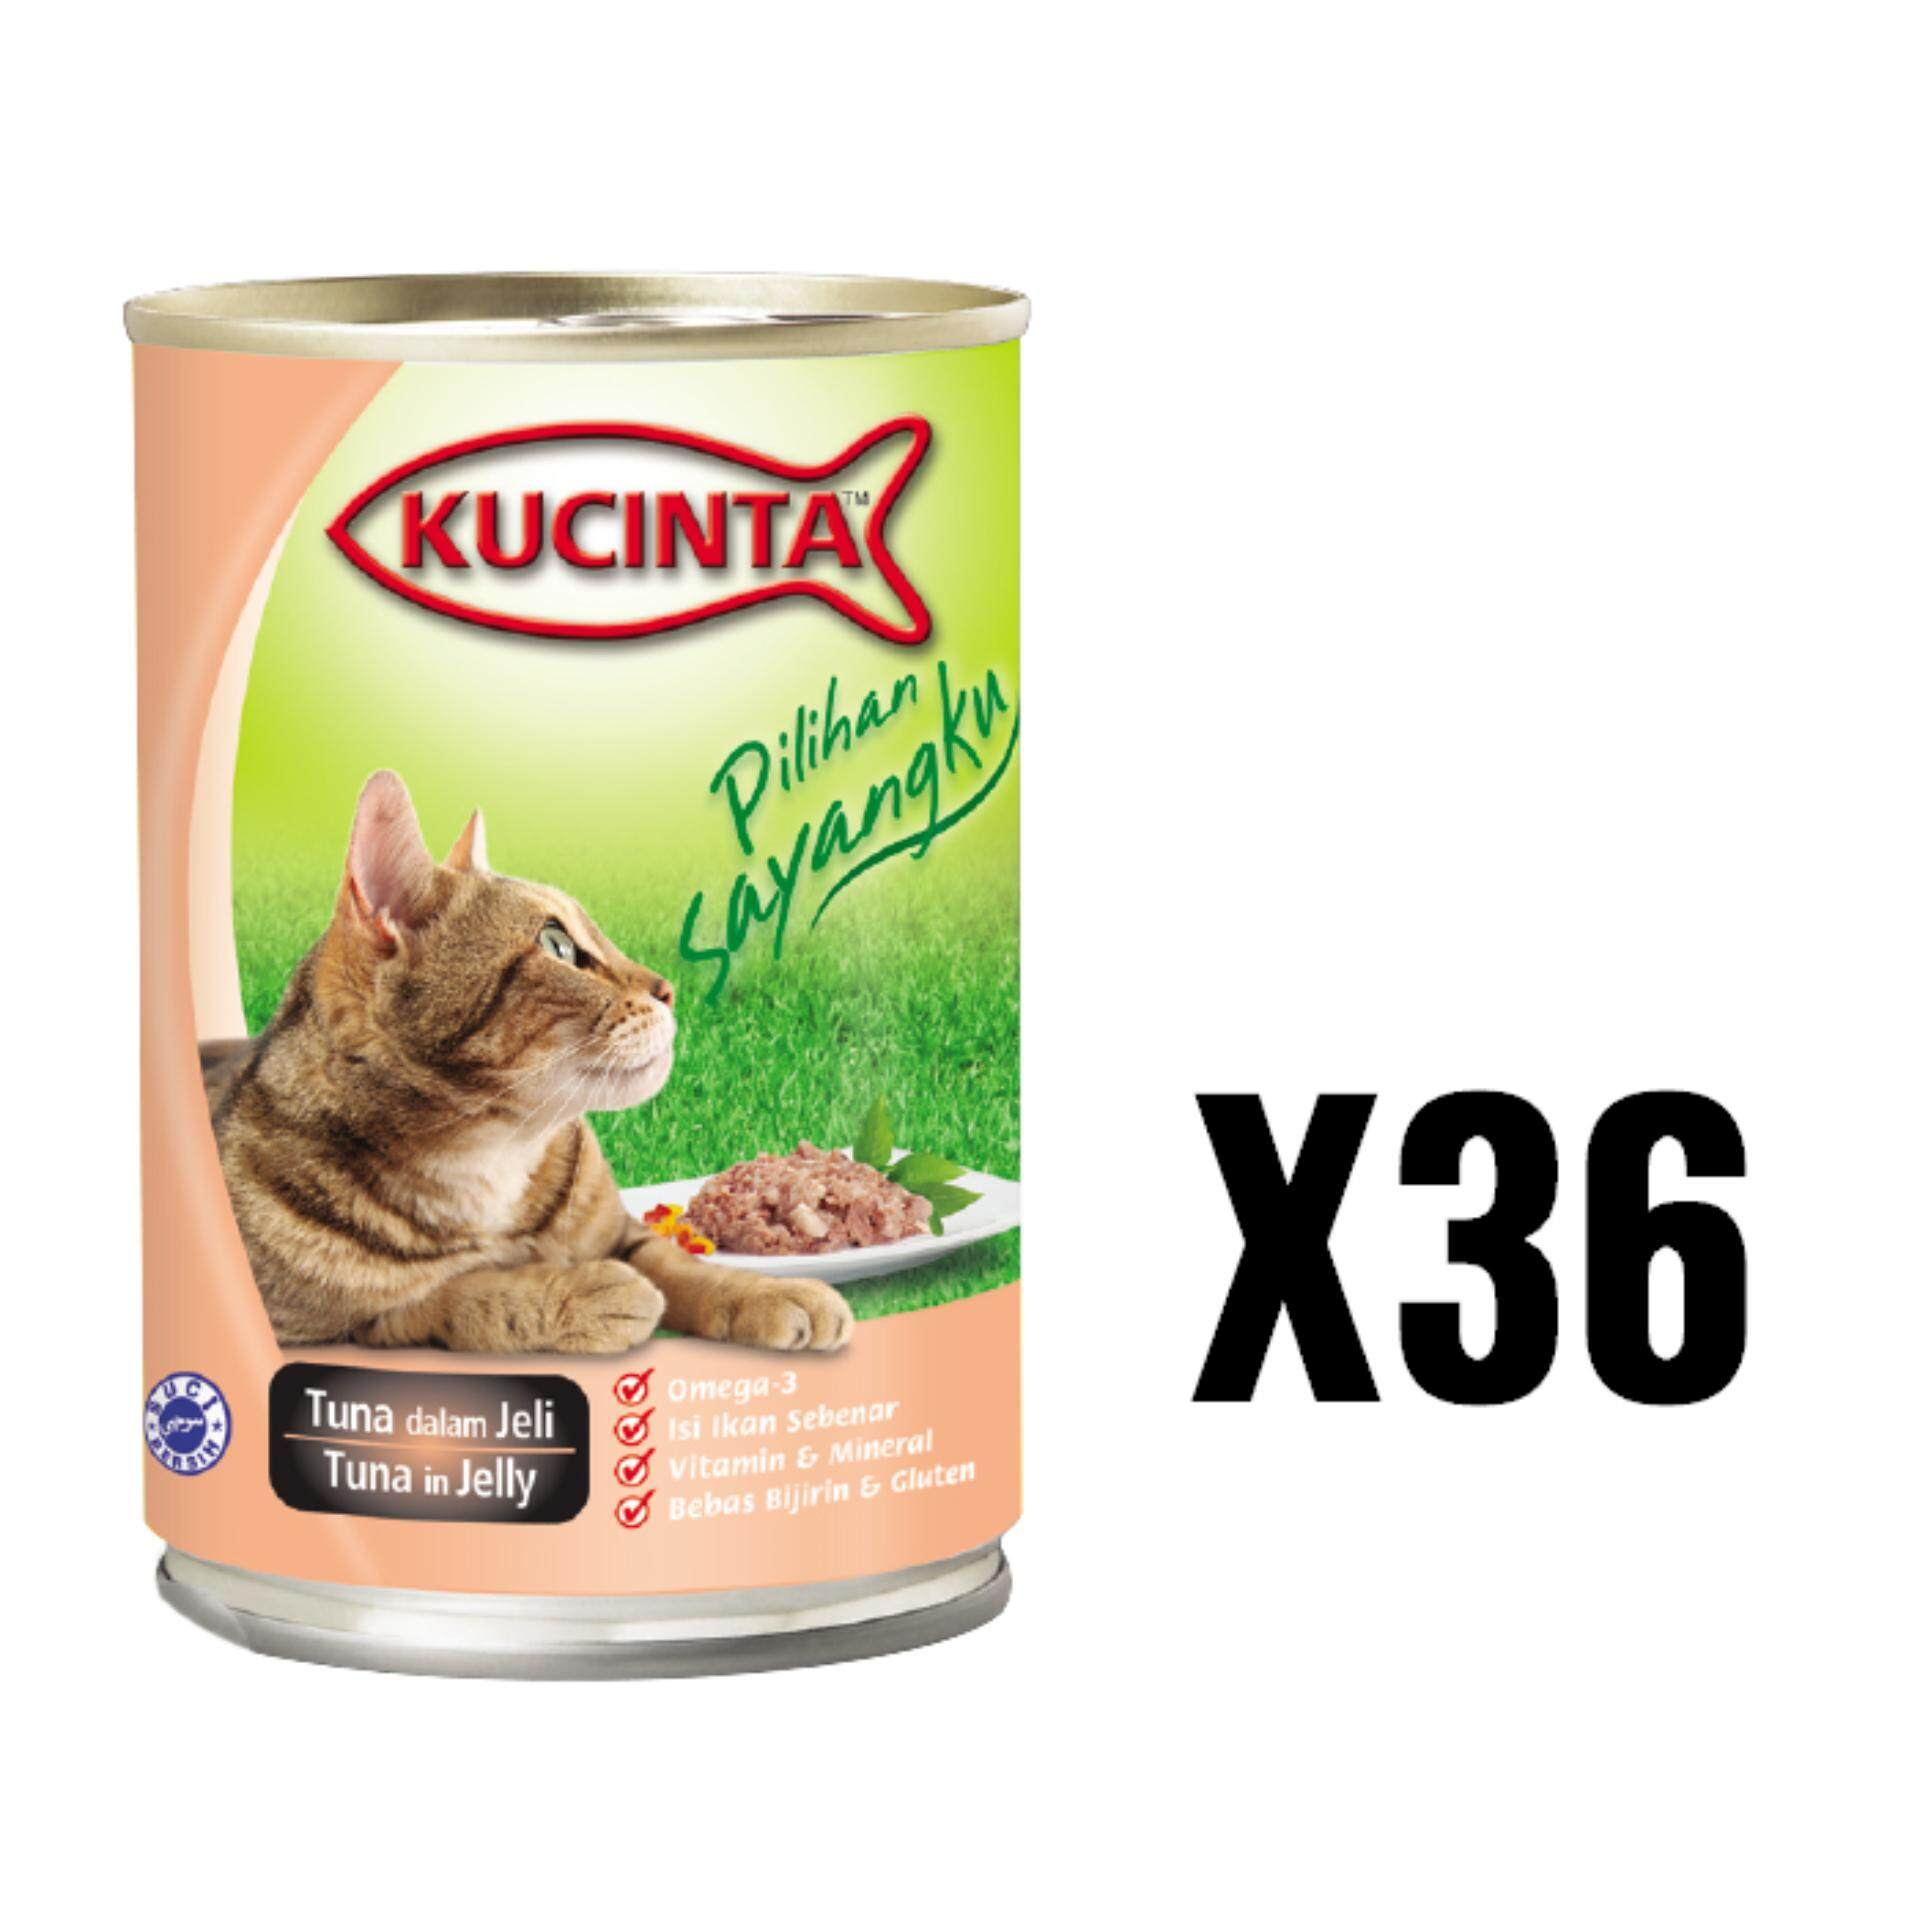 Kucinta Tuna in Jelly Canned Food 400G